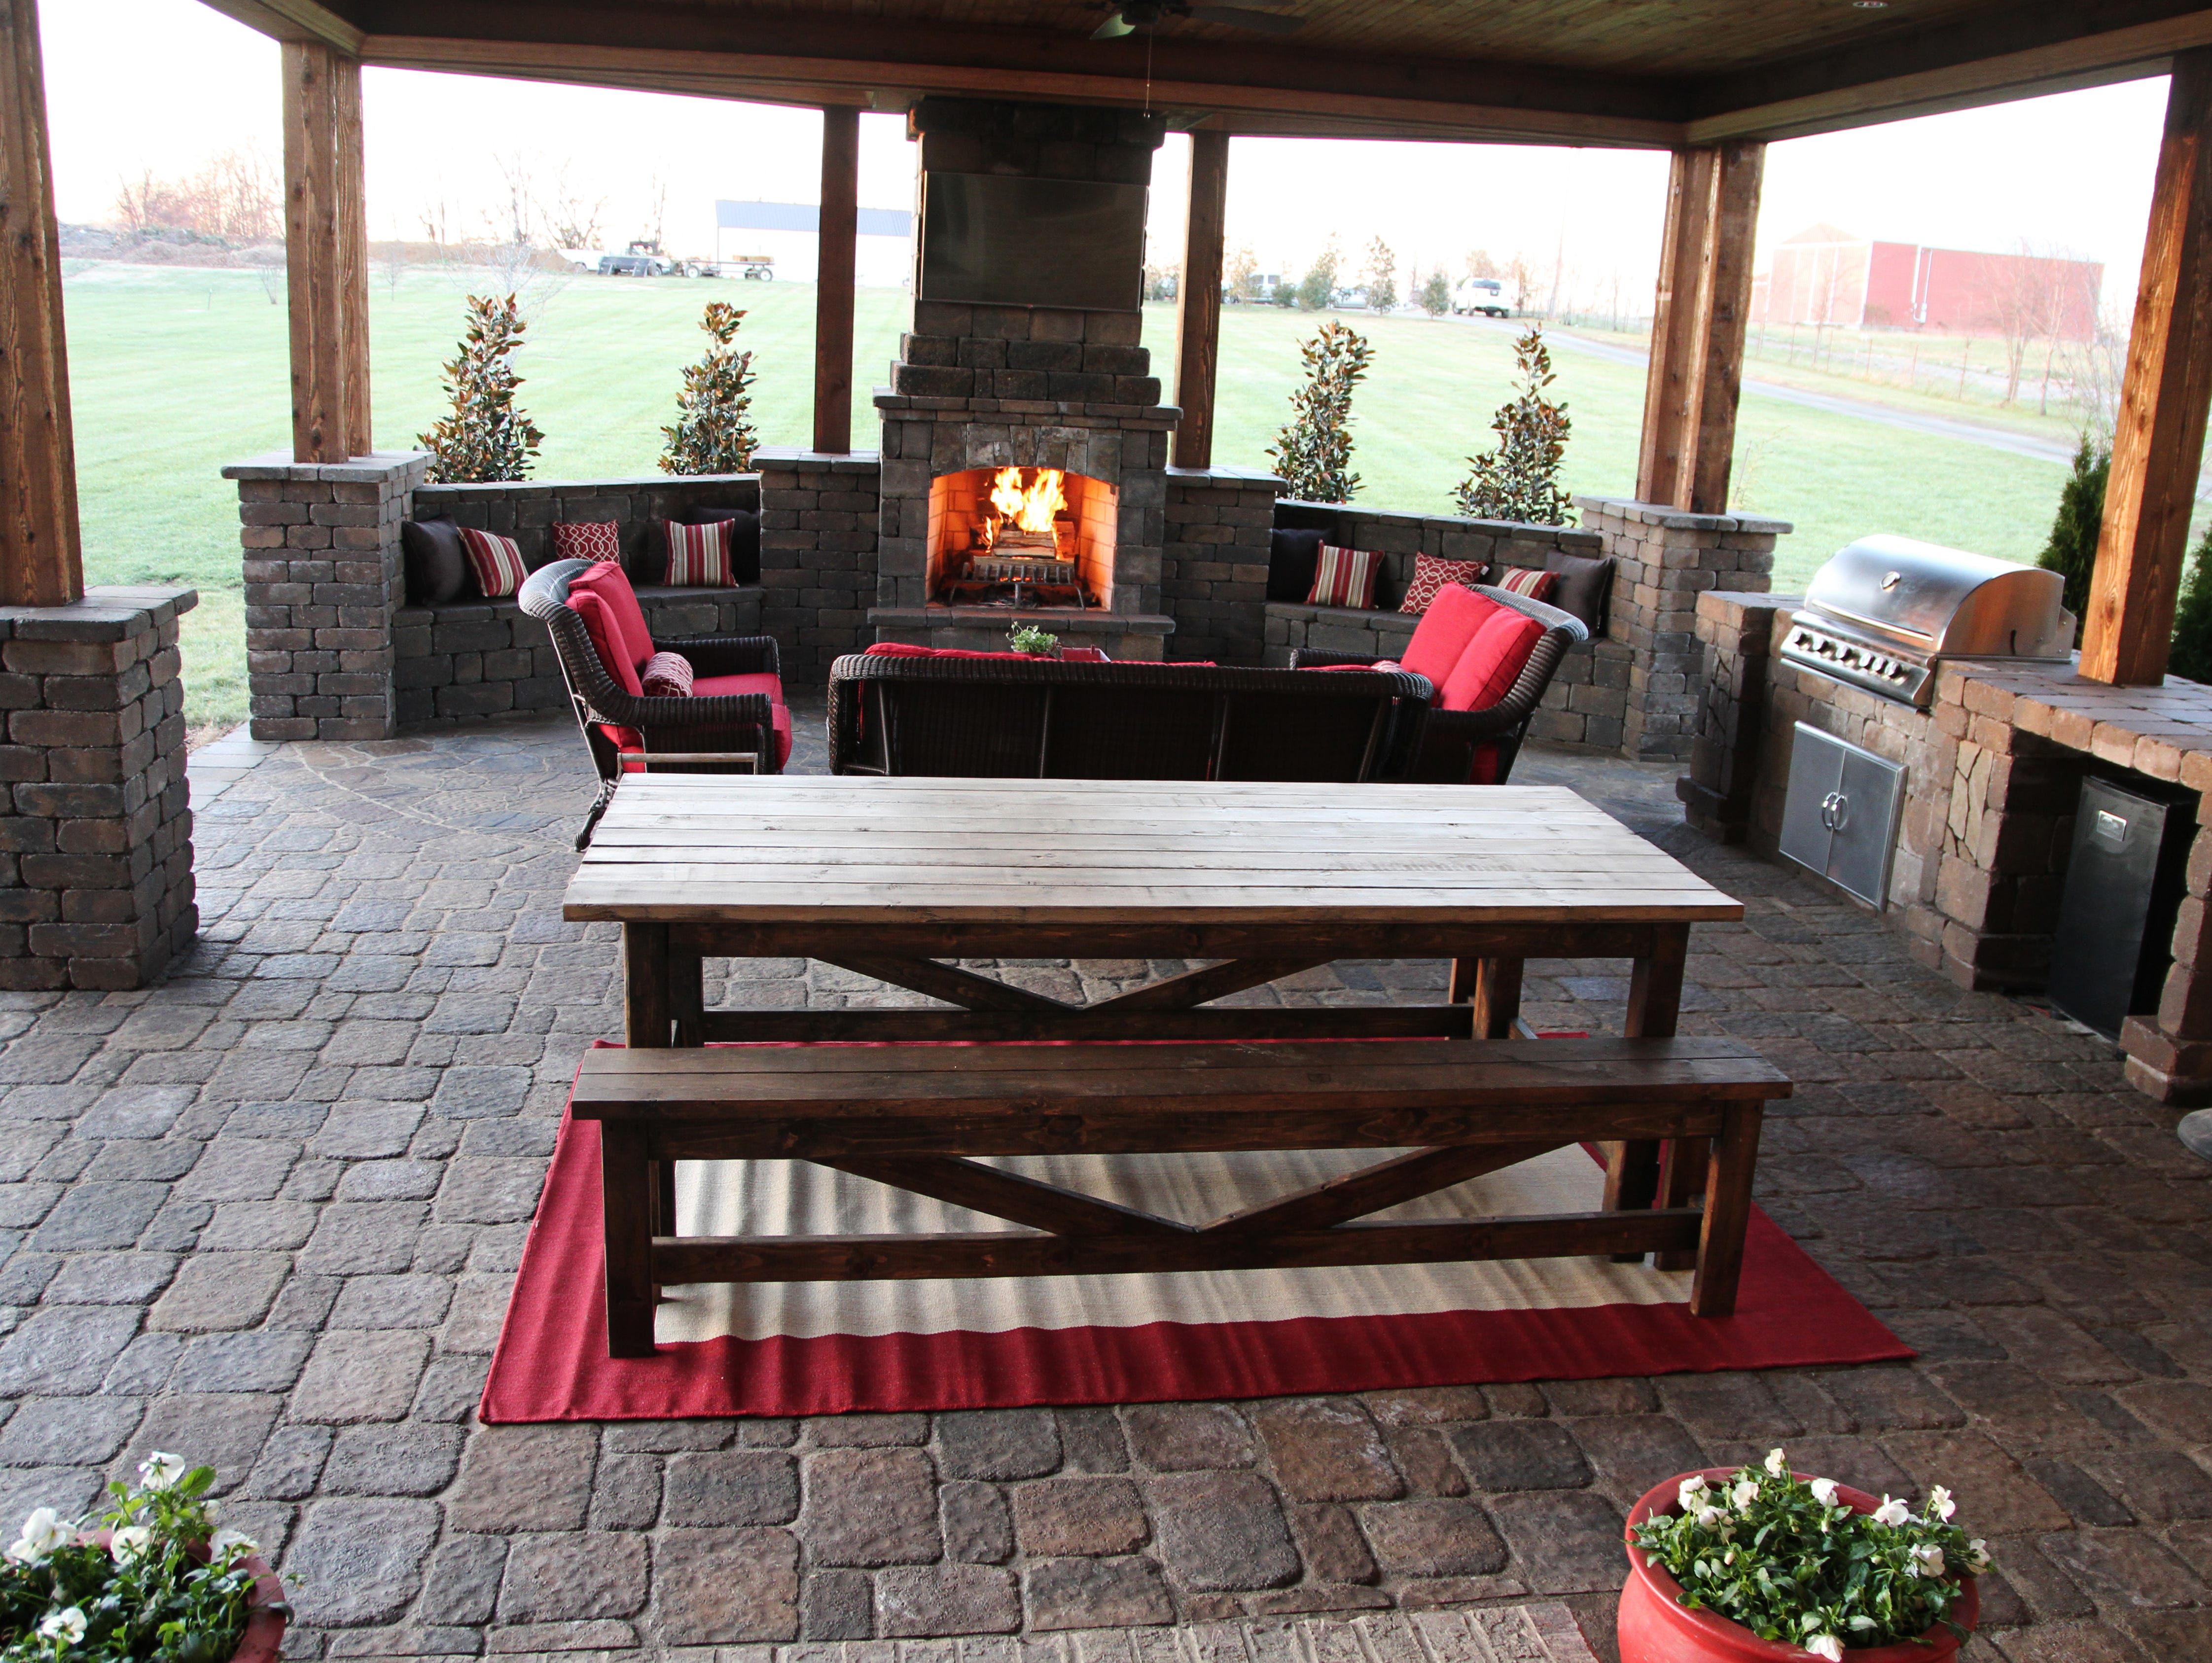 covered outdoor living spaces wooden jared crains covered outdoor living area has fireplace outdoor spaces one of biggest trends for 2018